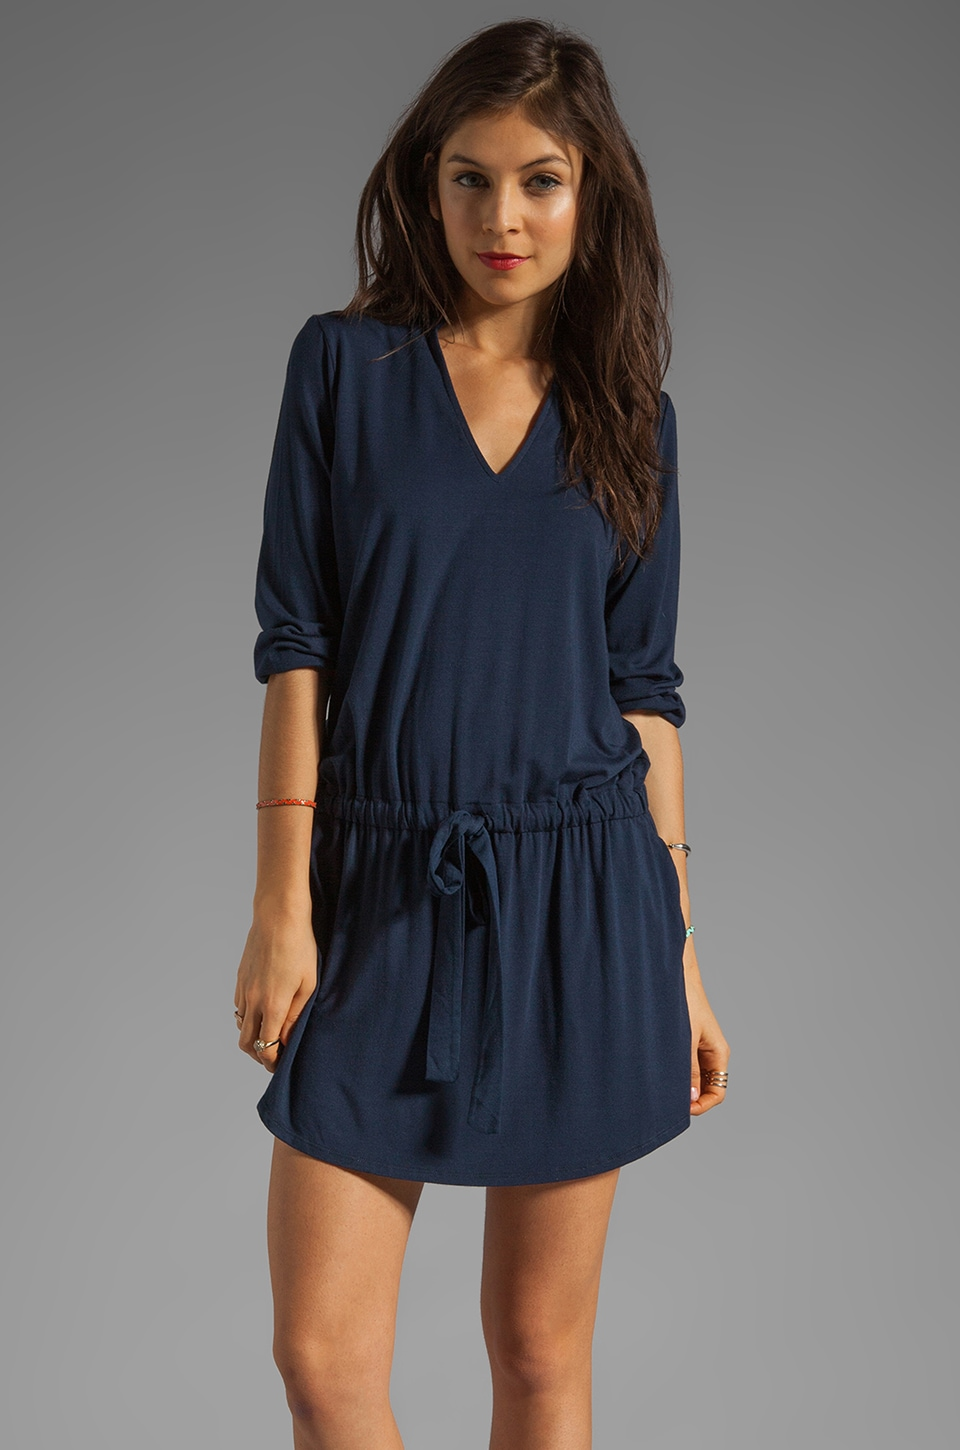 Michael Stars Justine 3/4 Sleeve Split Neck Drawstring Waist Dress in Night Sky